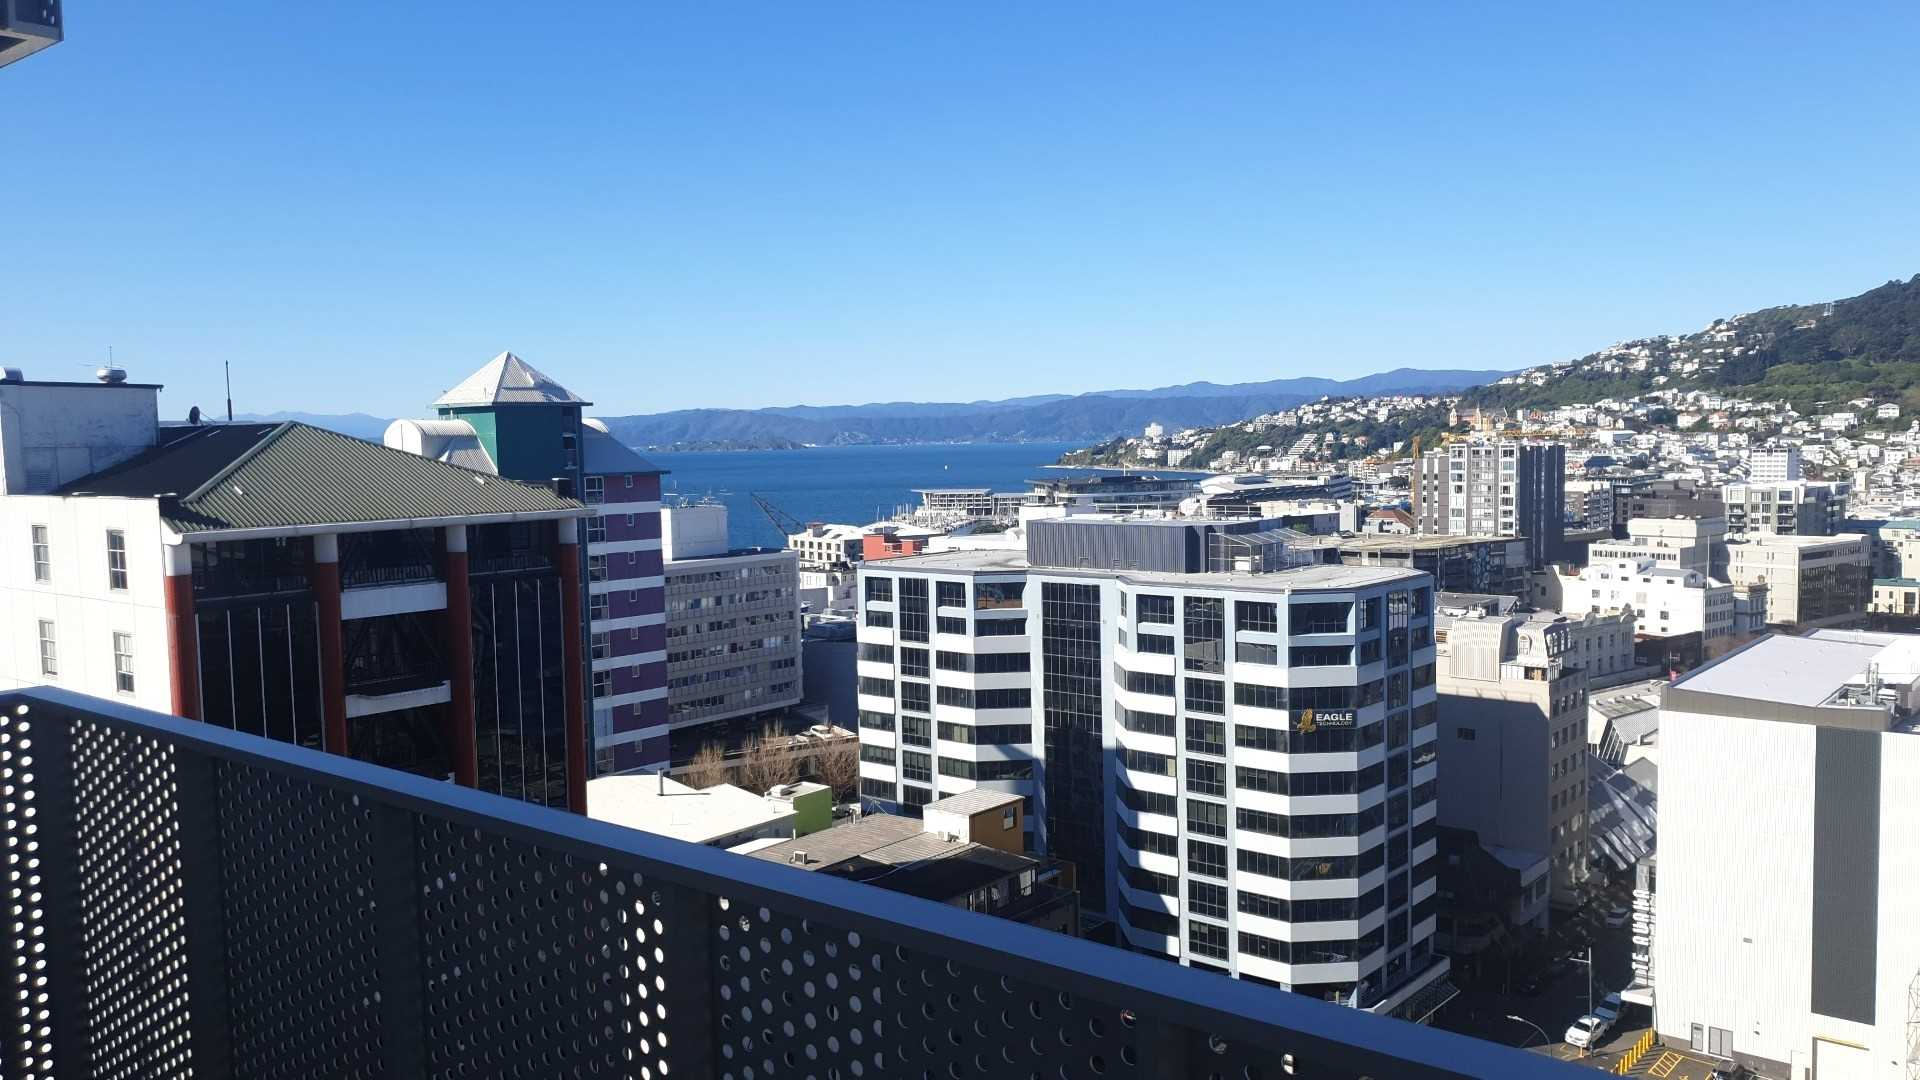 Real estate For rent Houses & apartments : Near New Modern Studio Apartment, Wellington